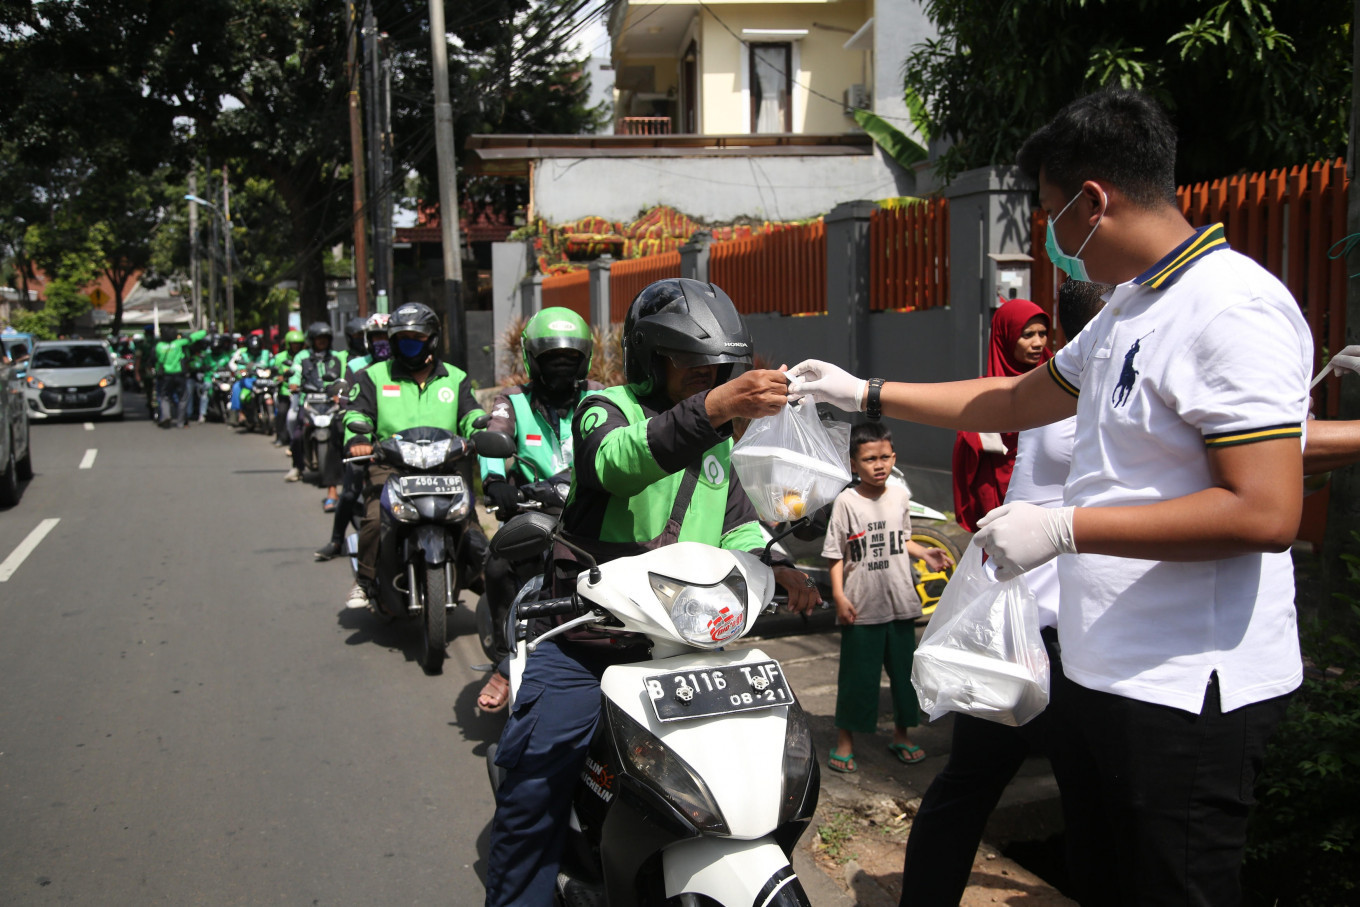 App-based motorcycle taxis can take passengers if regional government allows